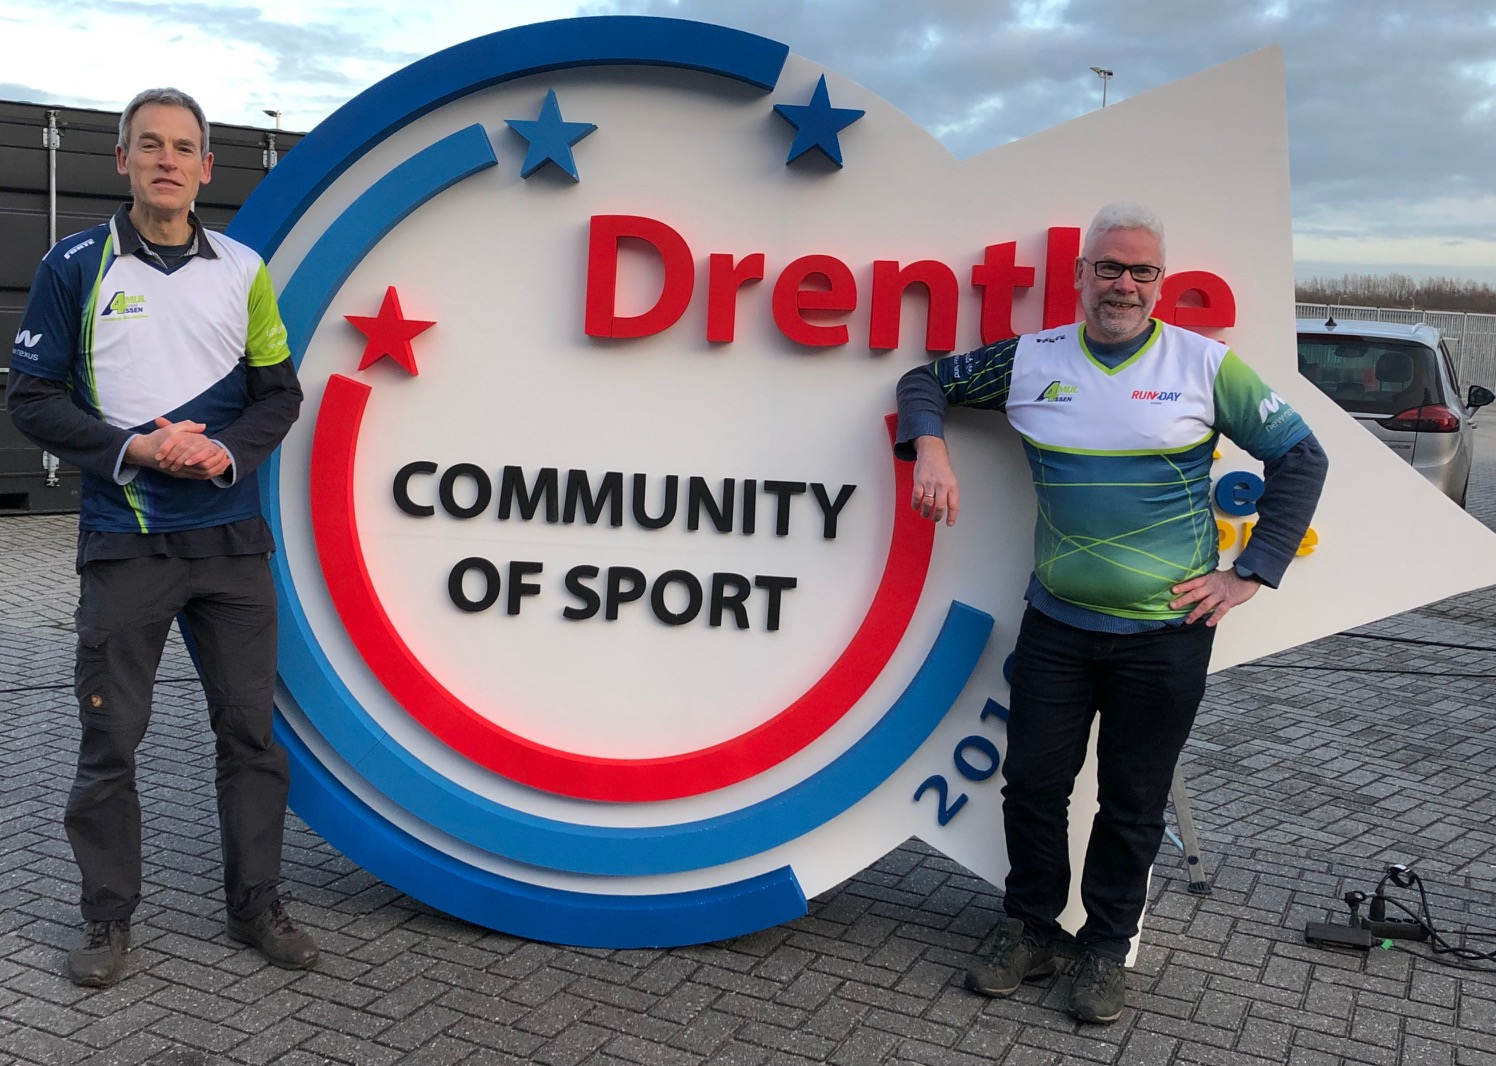 Drenthe European Community of Sport